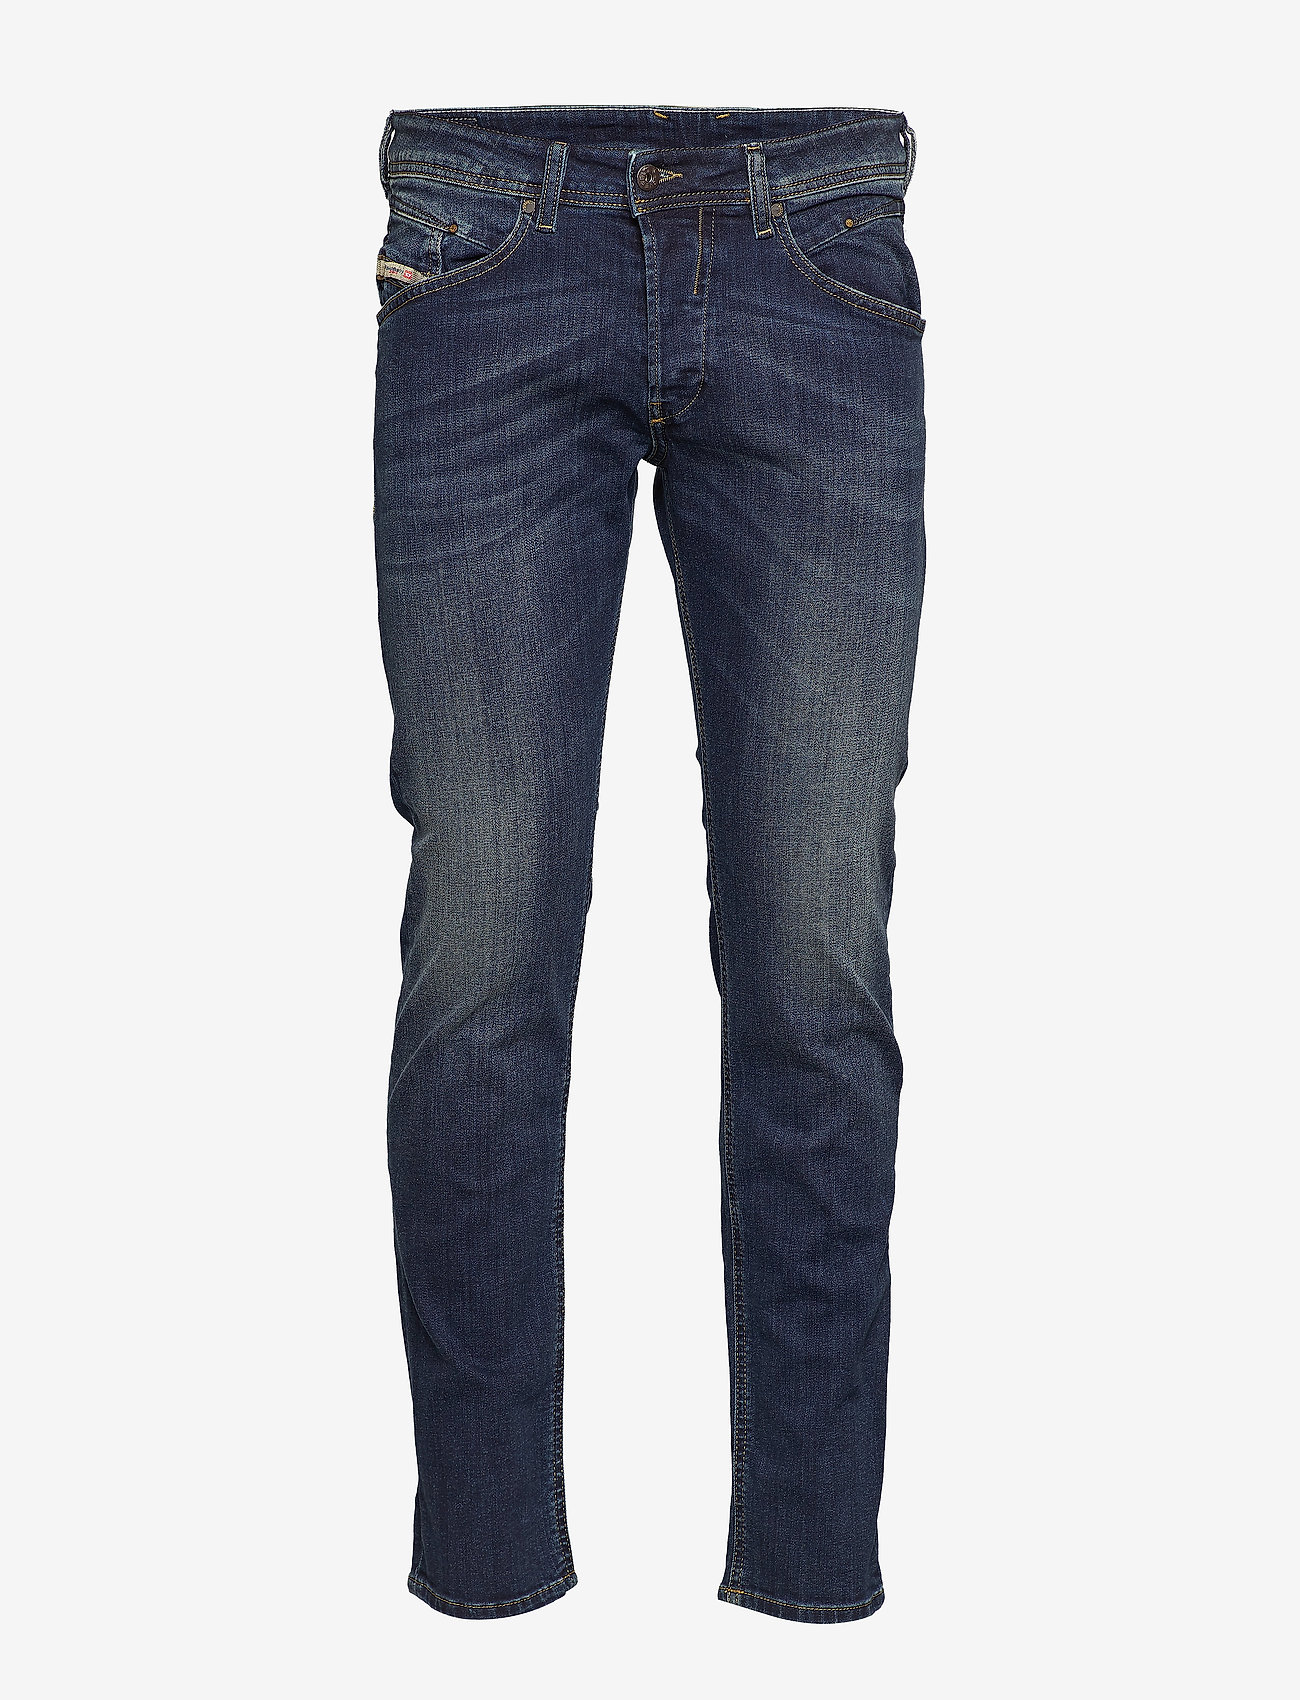 Diesel Men - BELTHER - regular jeans - denim